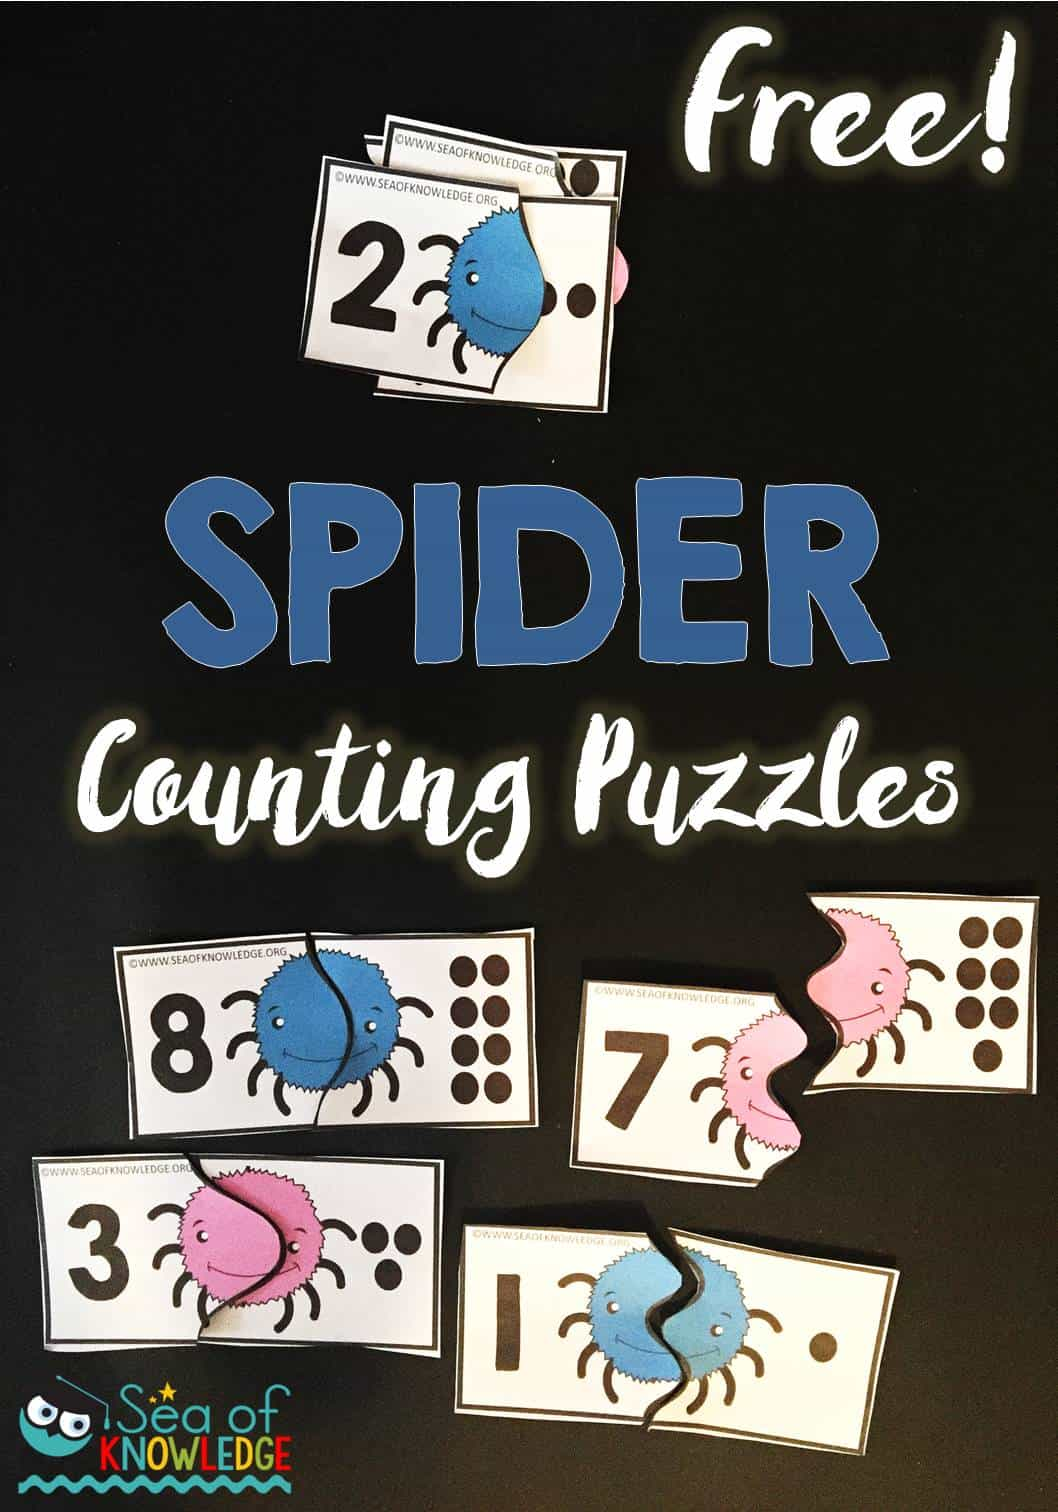 Spider Counting Puzzles Free